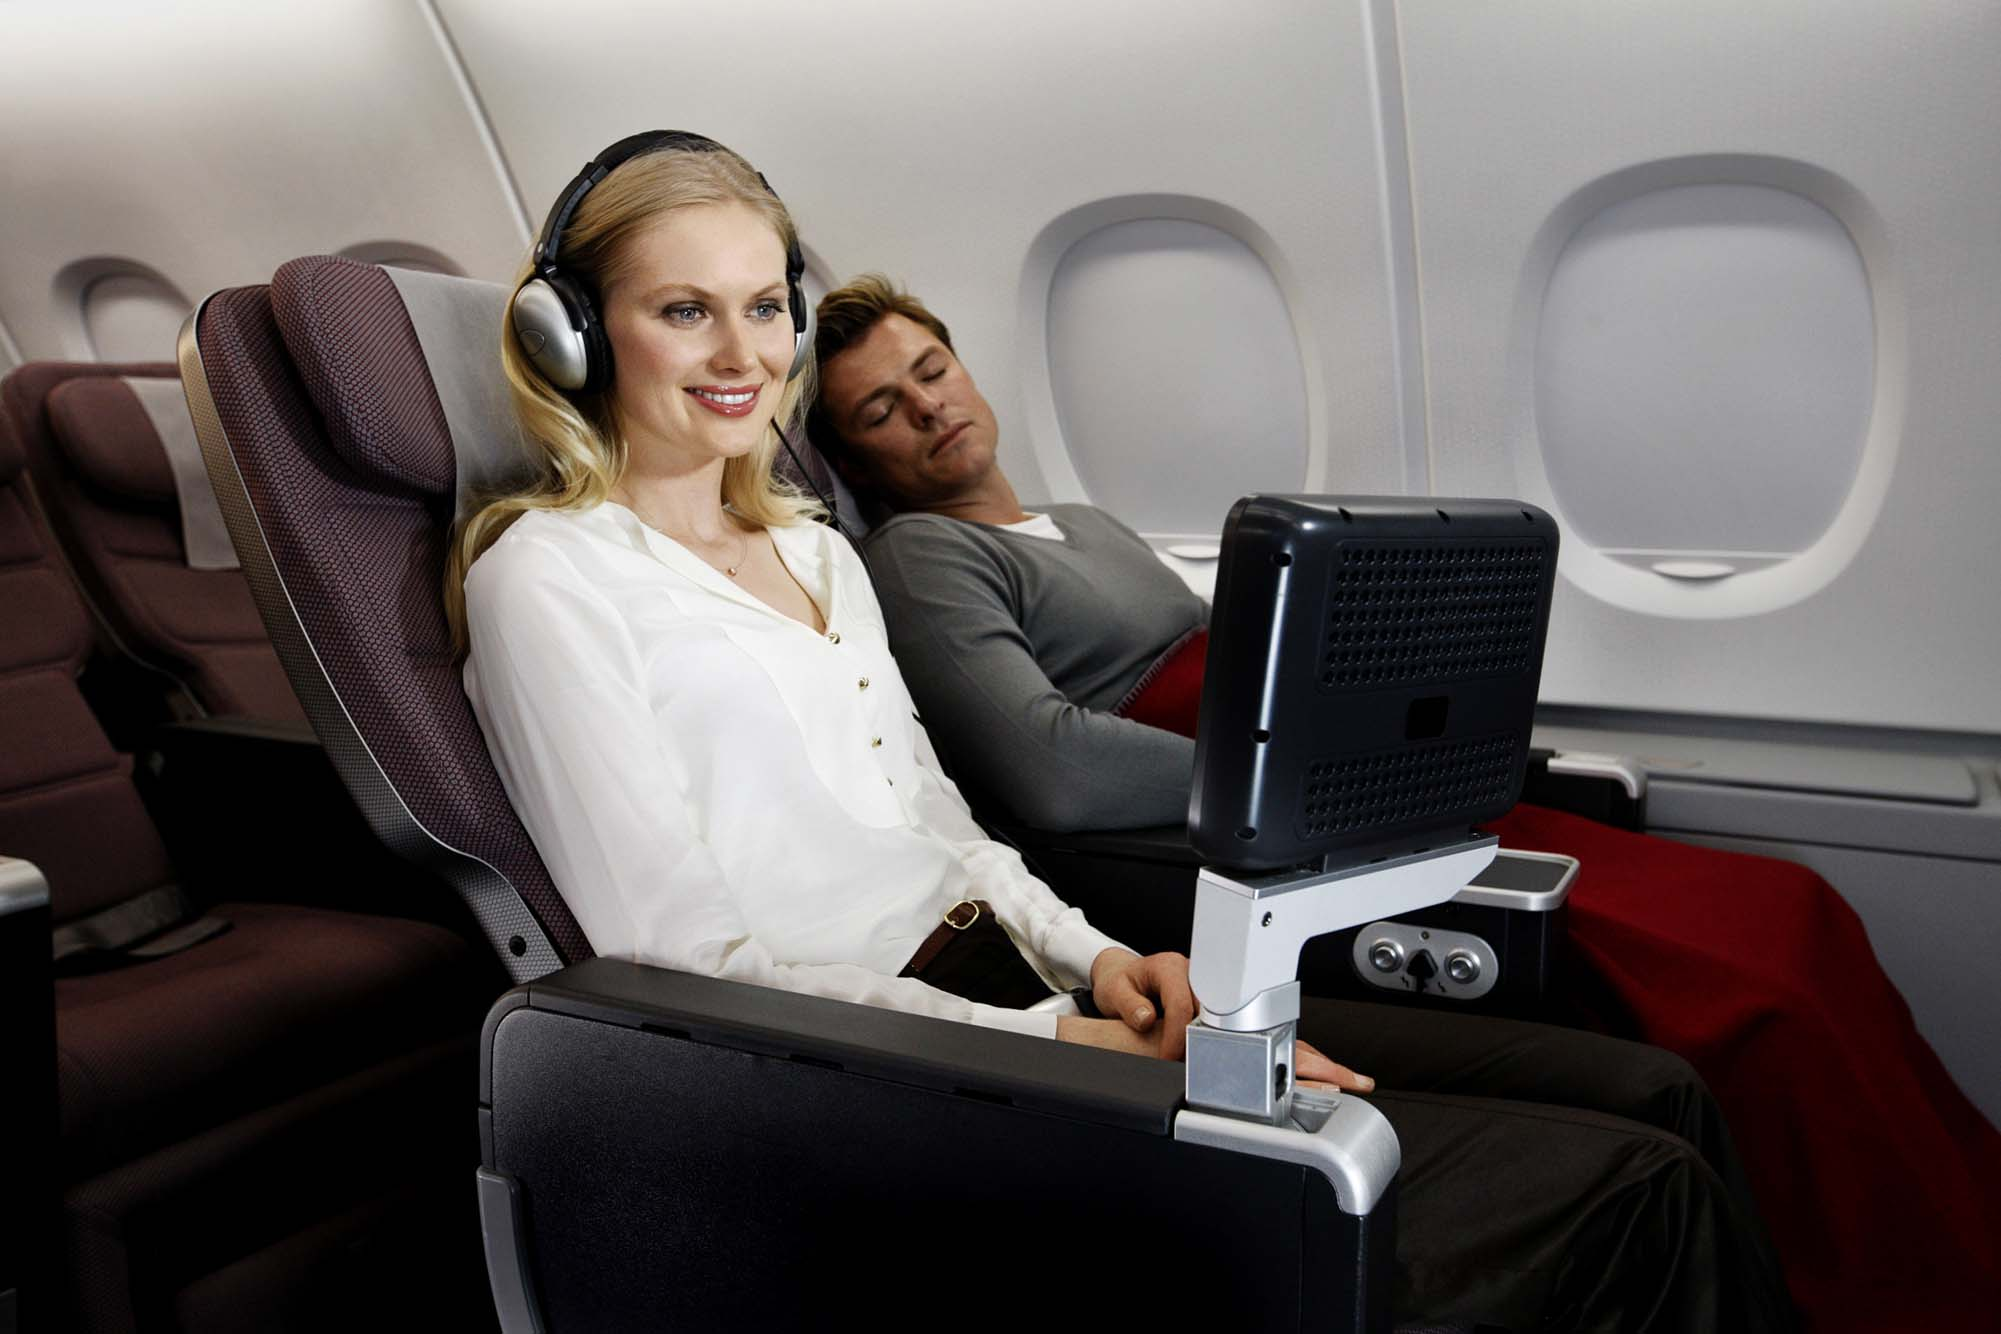 Premium economy demand is growing as airlines upgrade business and downgrade economy. Image: Qantas